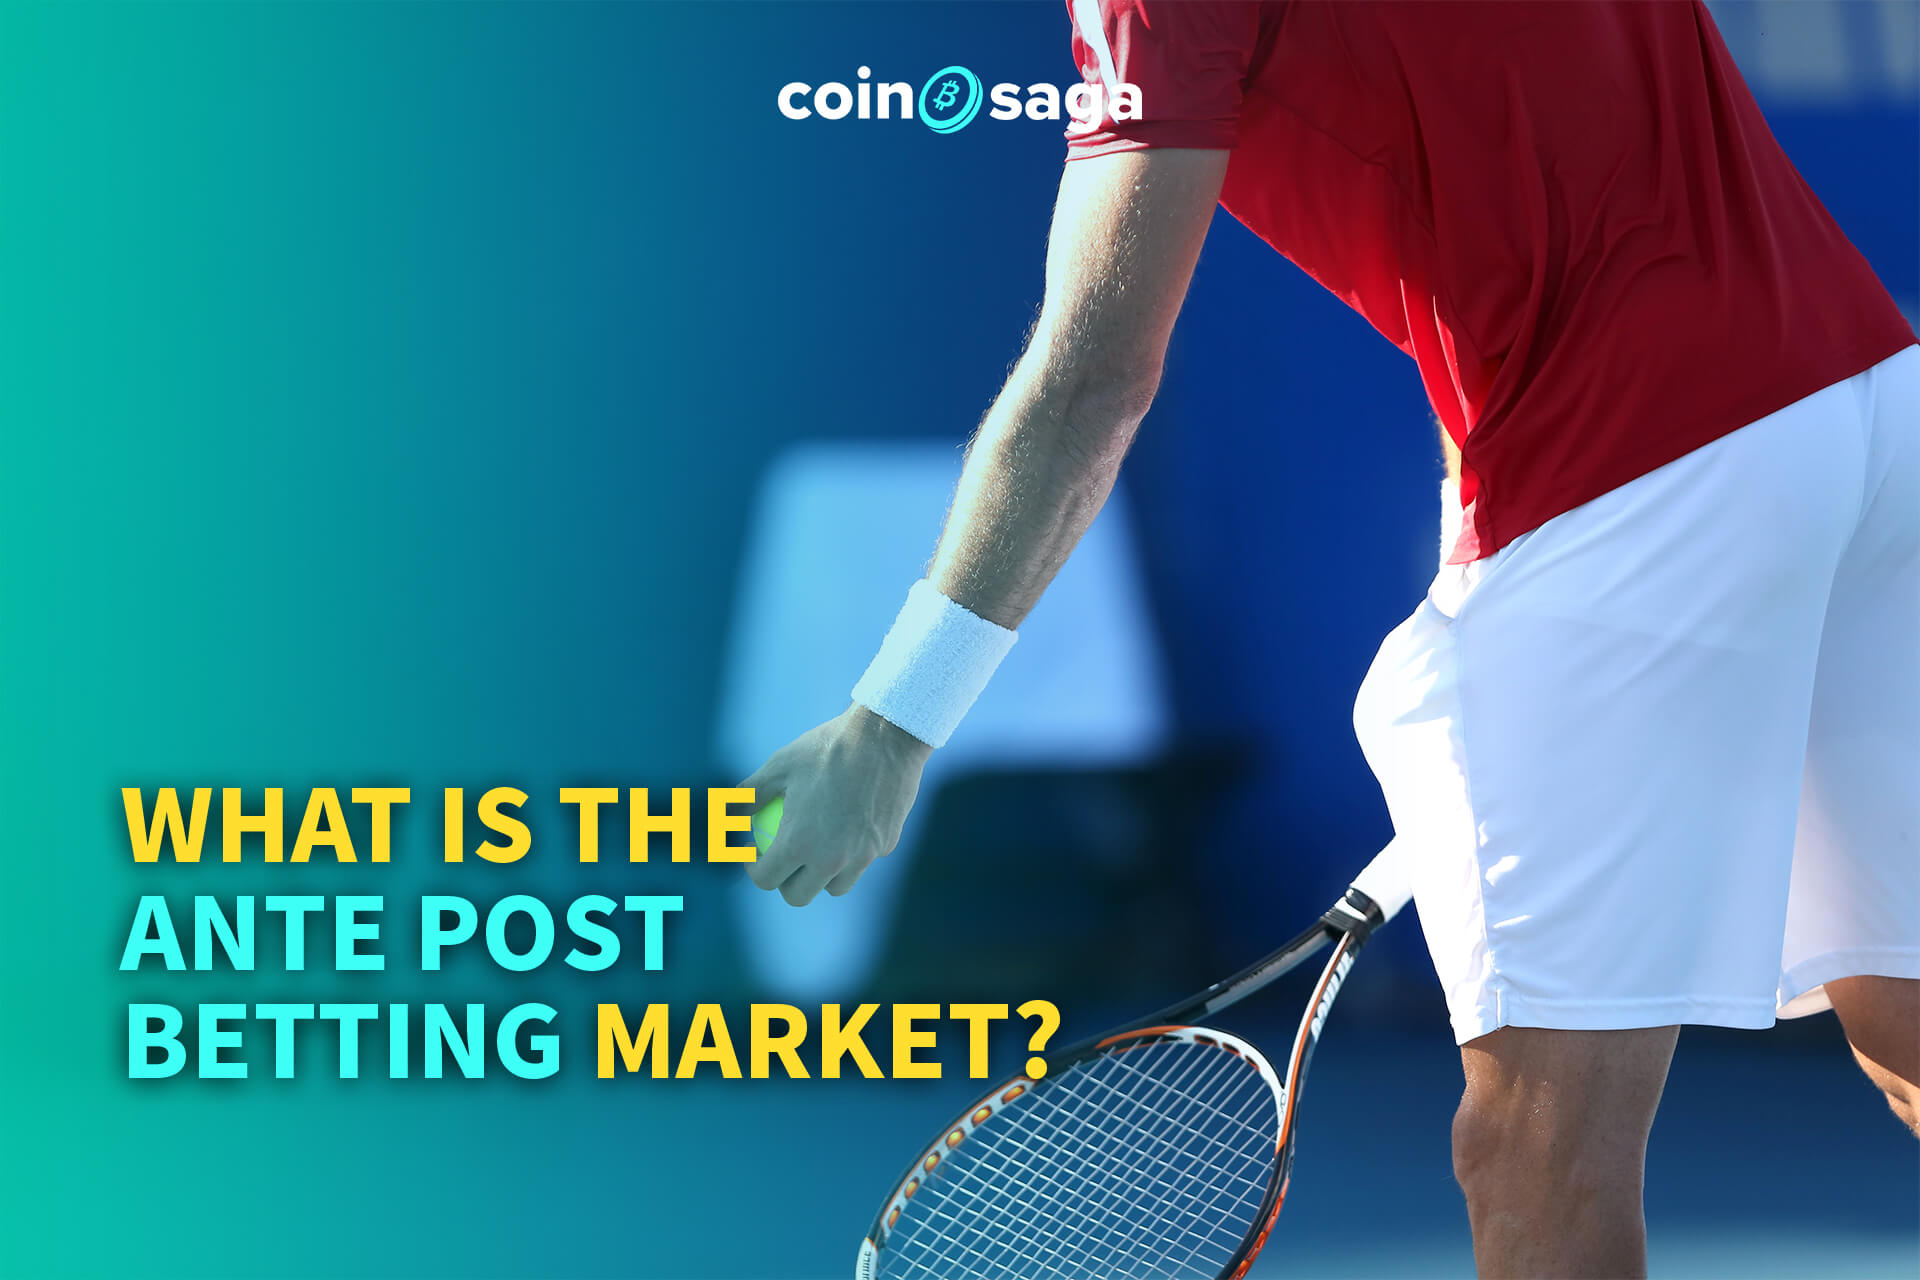 what is the ante post betting market